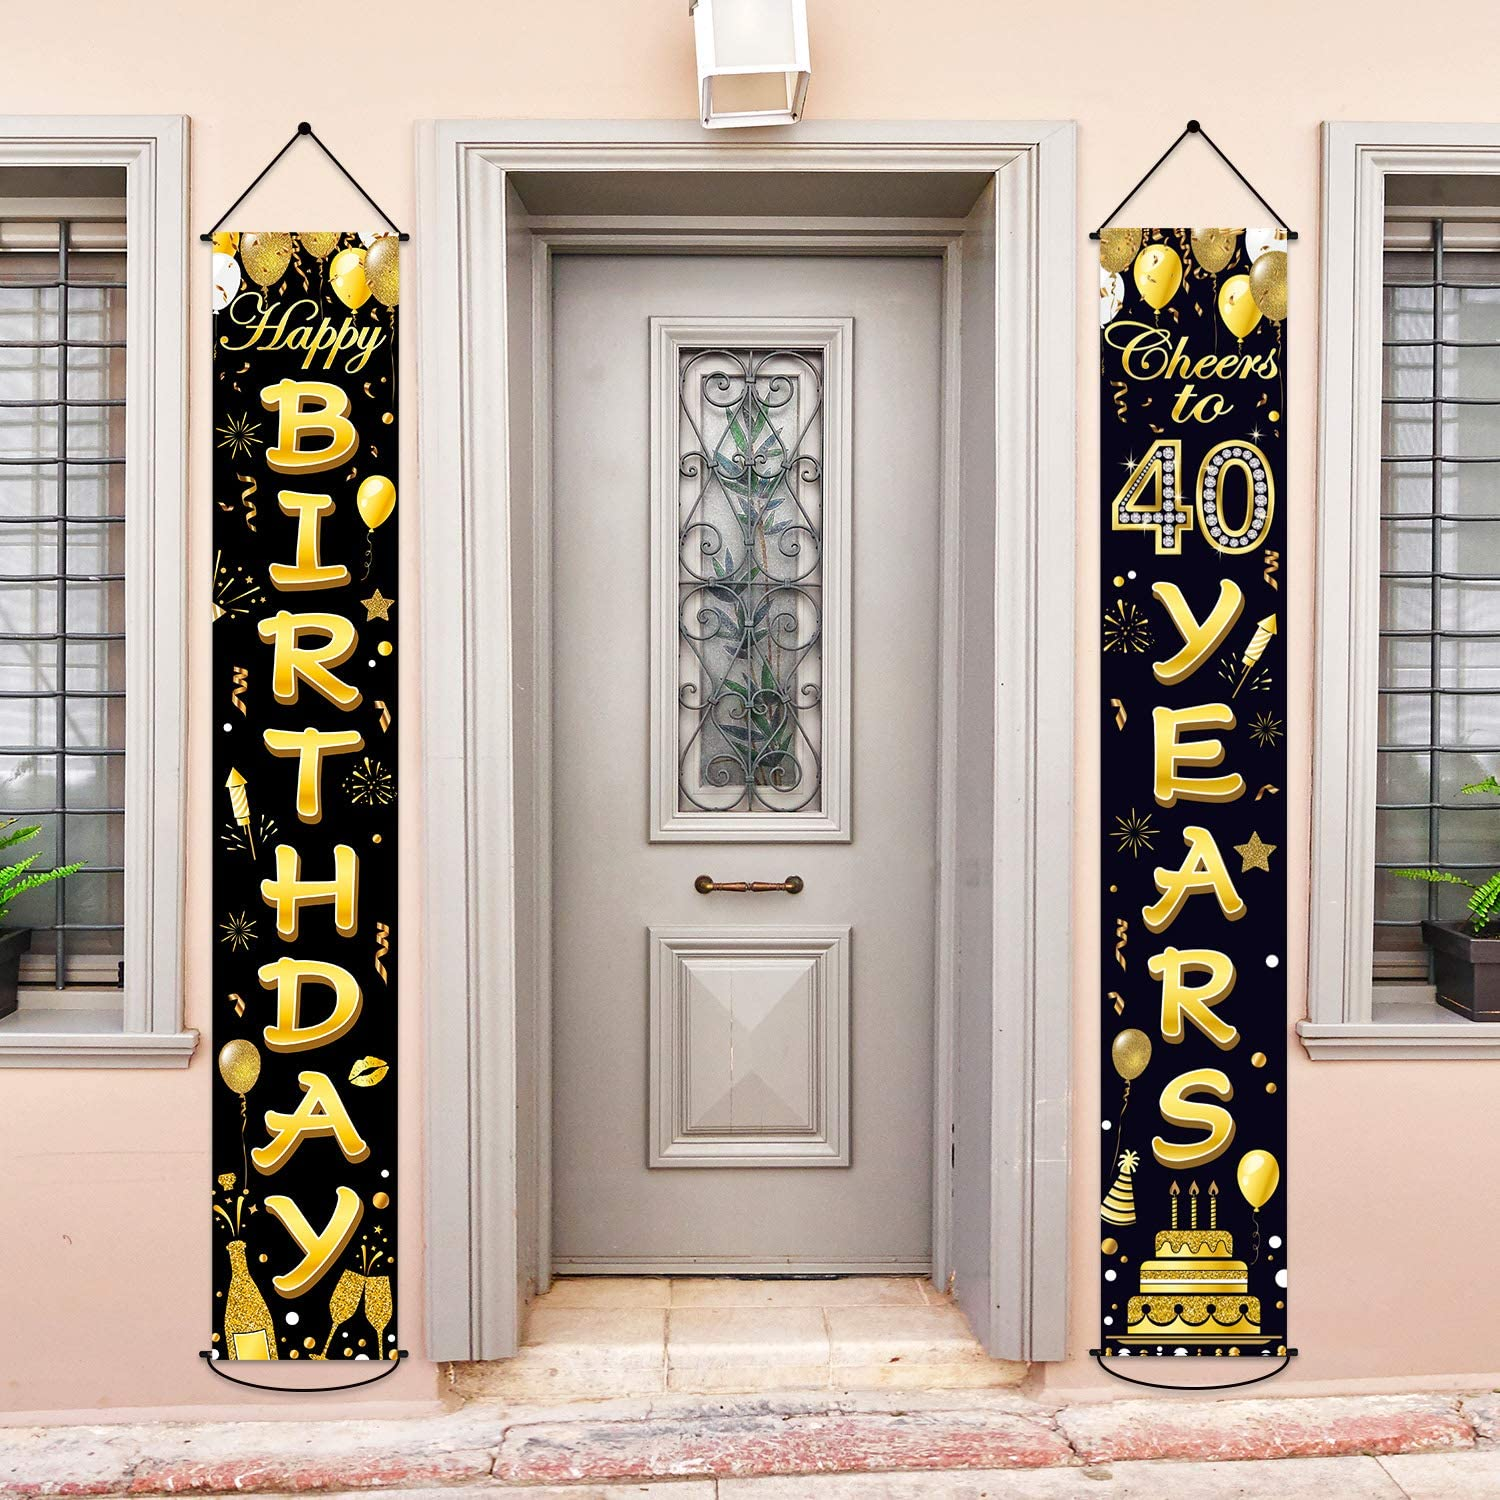 40th Birthday Party Banner Decorations Cheers to 40 Years Banner 40th Party Gold